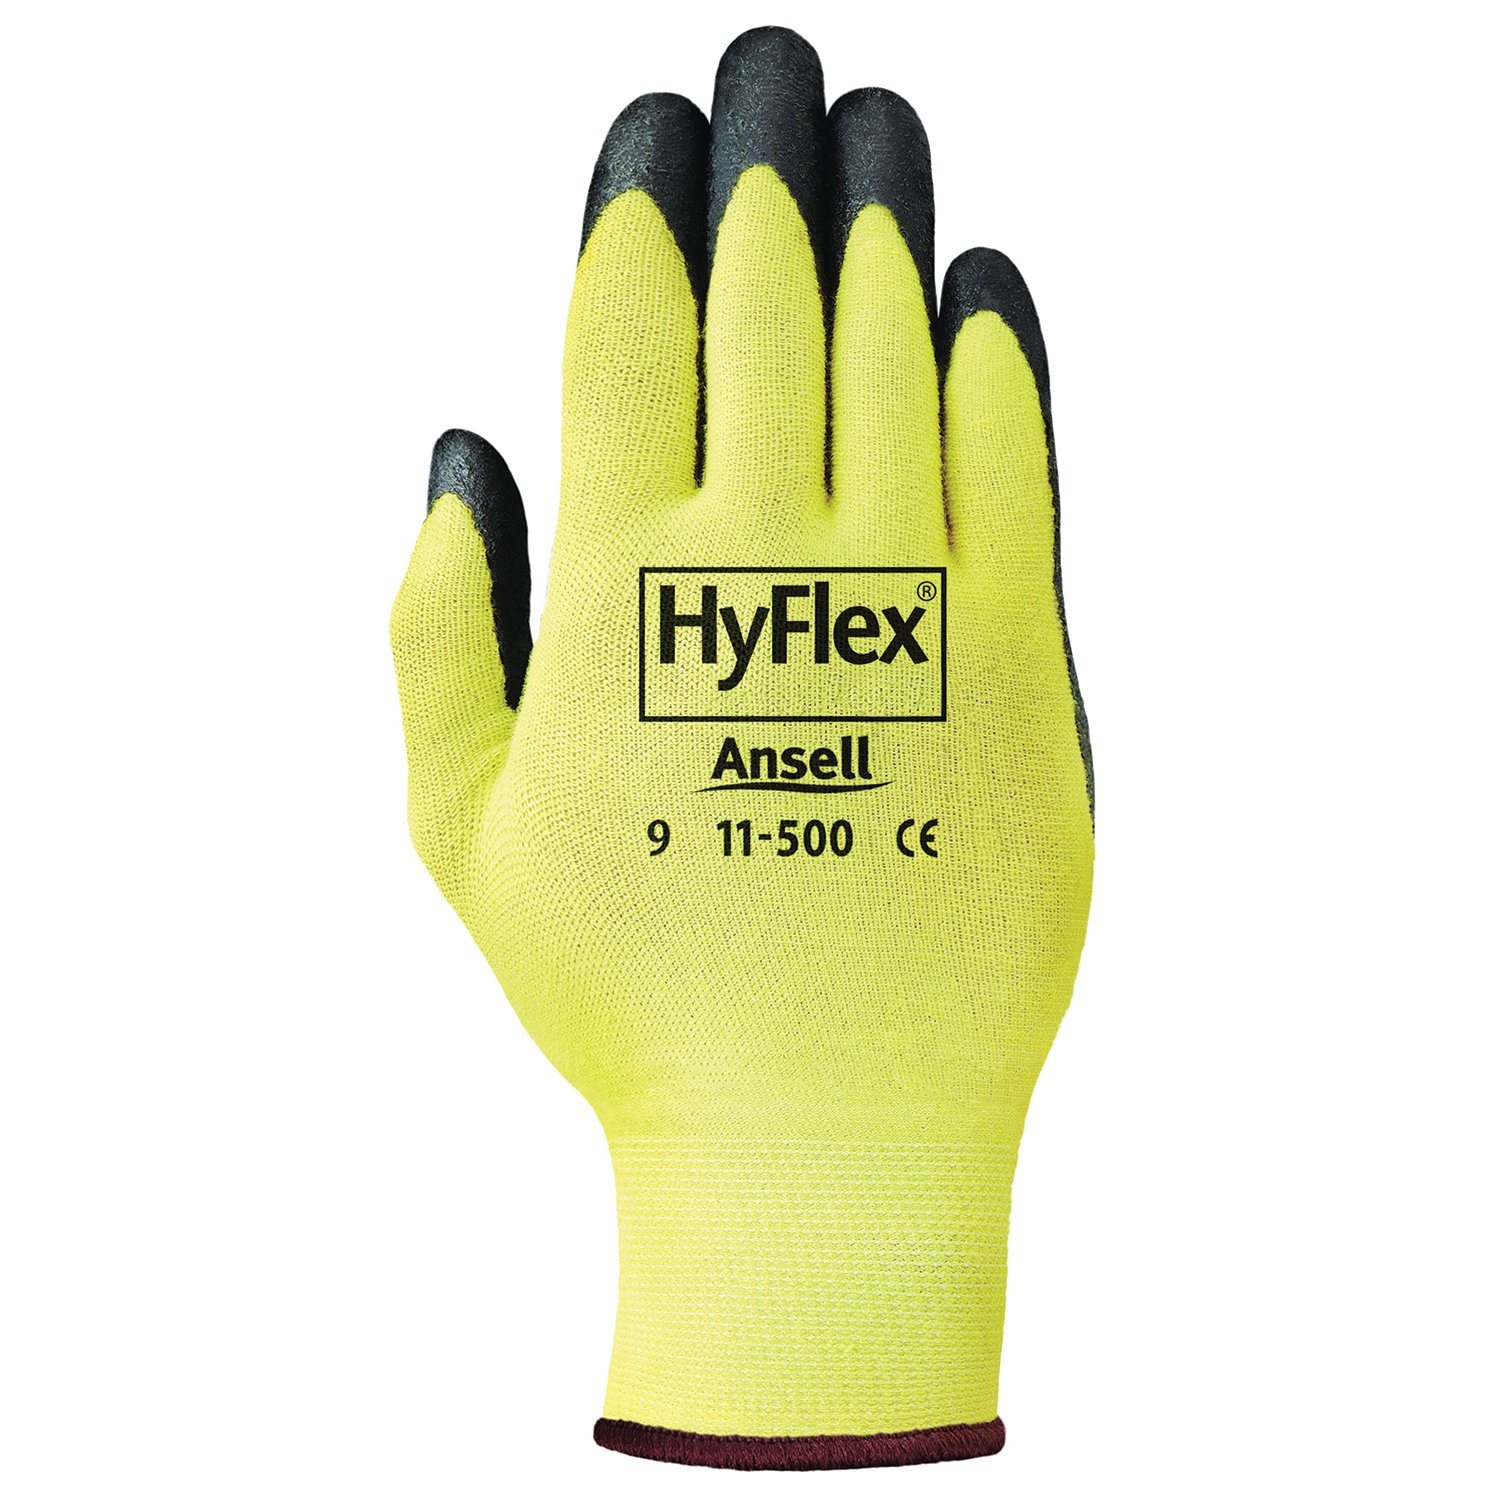 Ansell 11-500-8 Coated Glove, Medium, Foam Nitrile